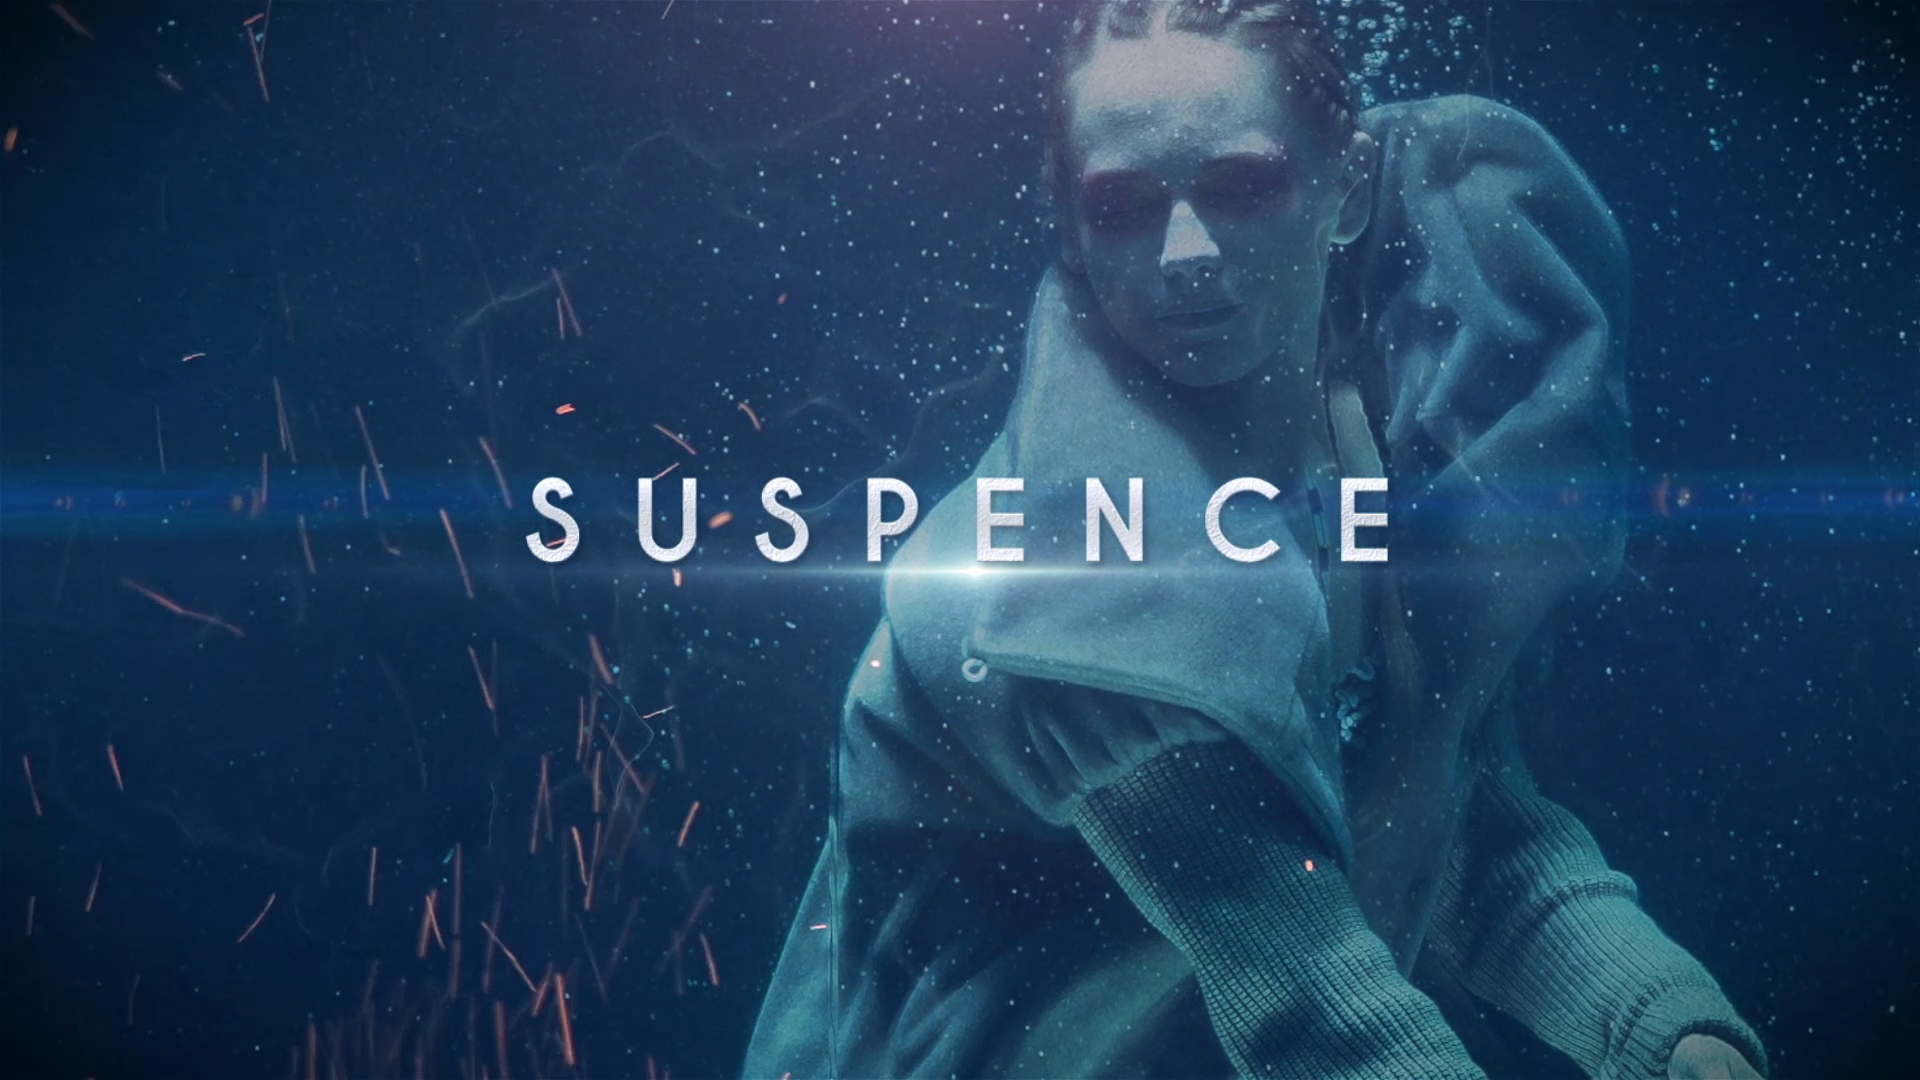 suspenseful trailer template for ae